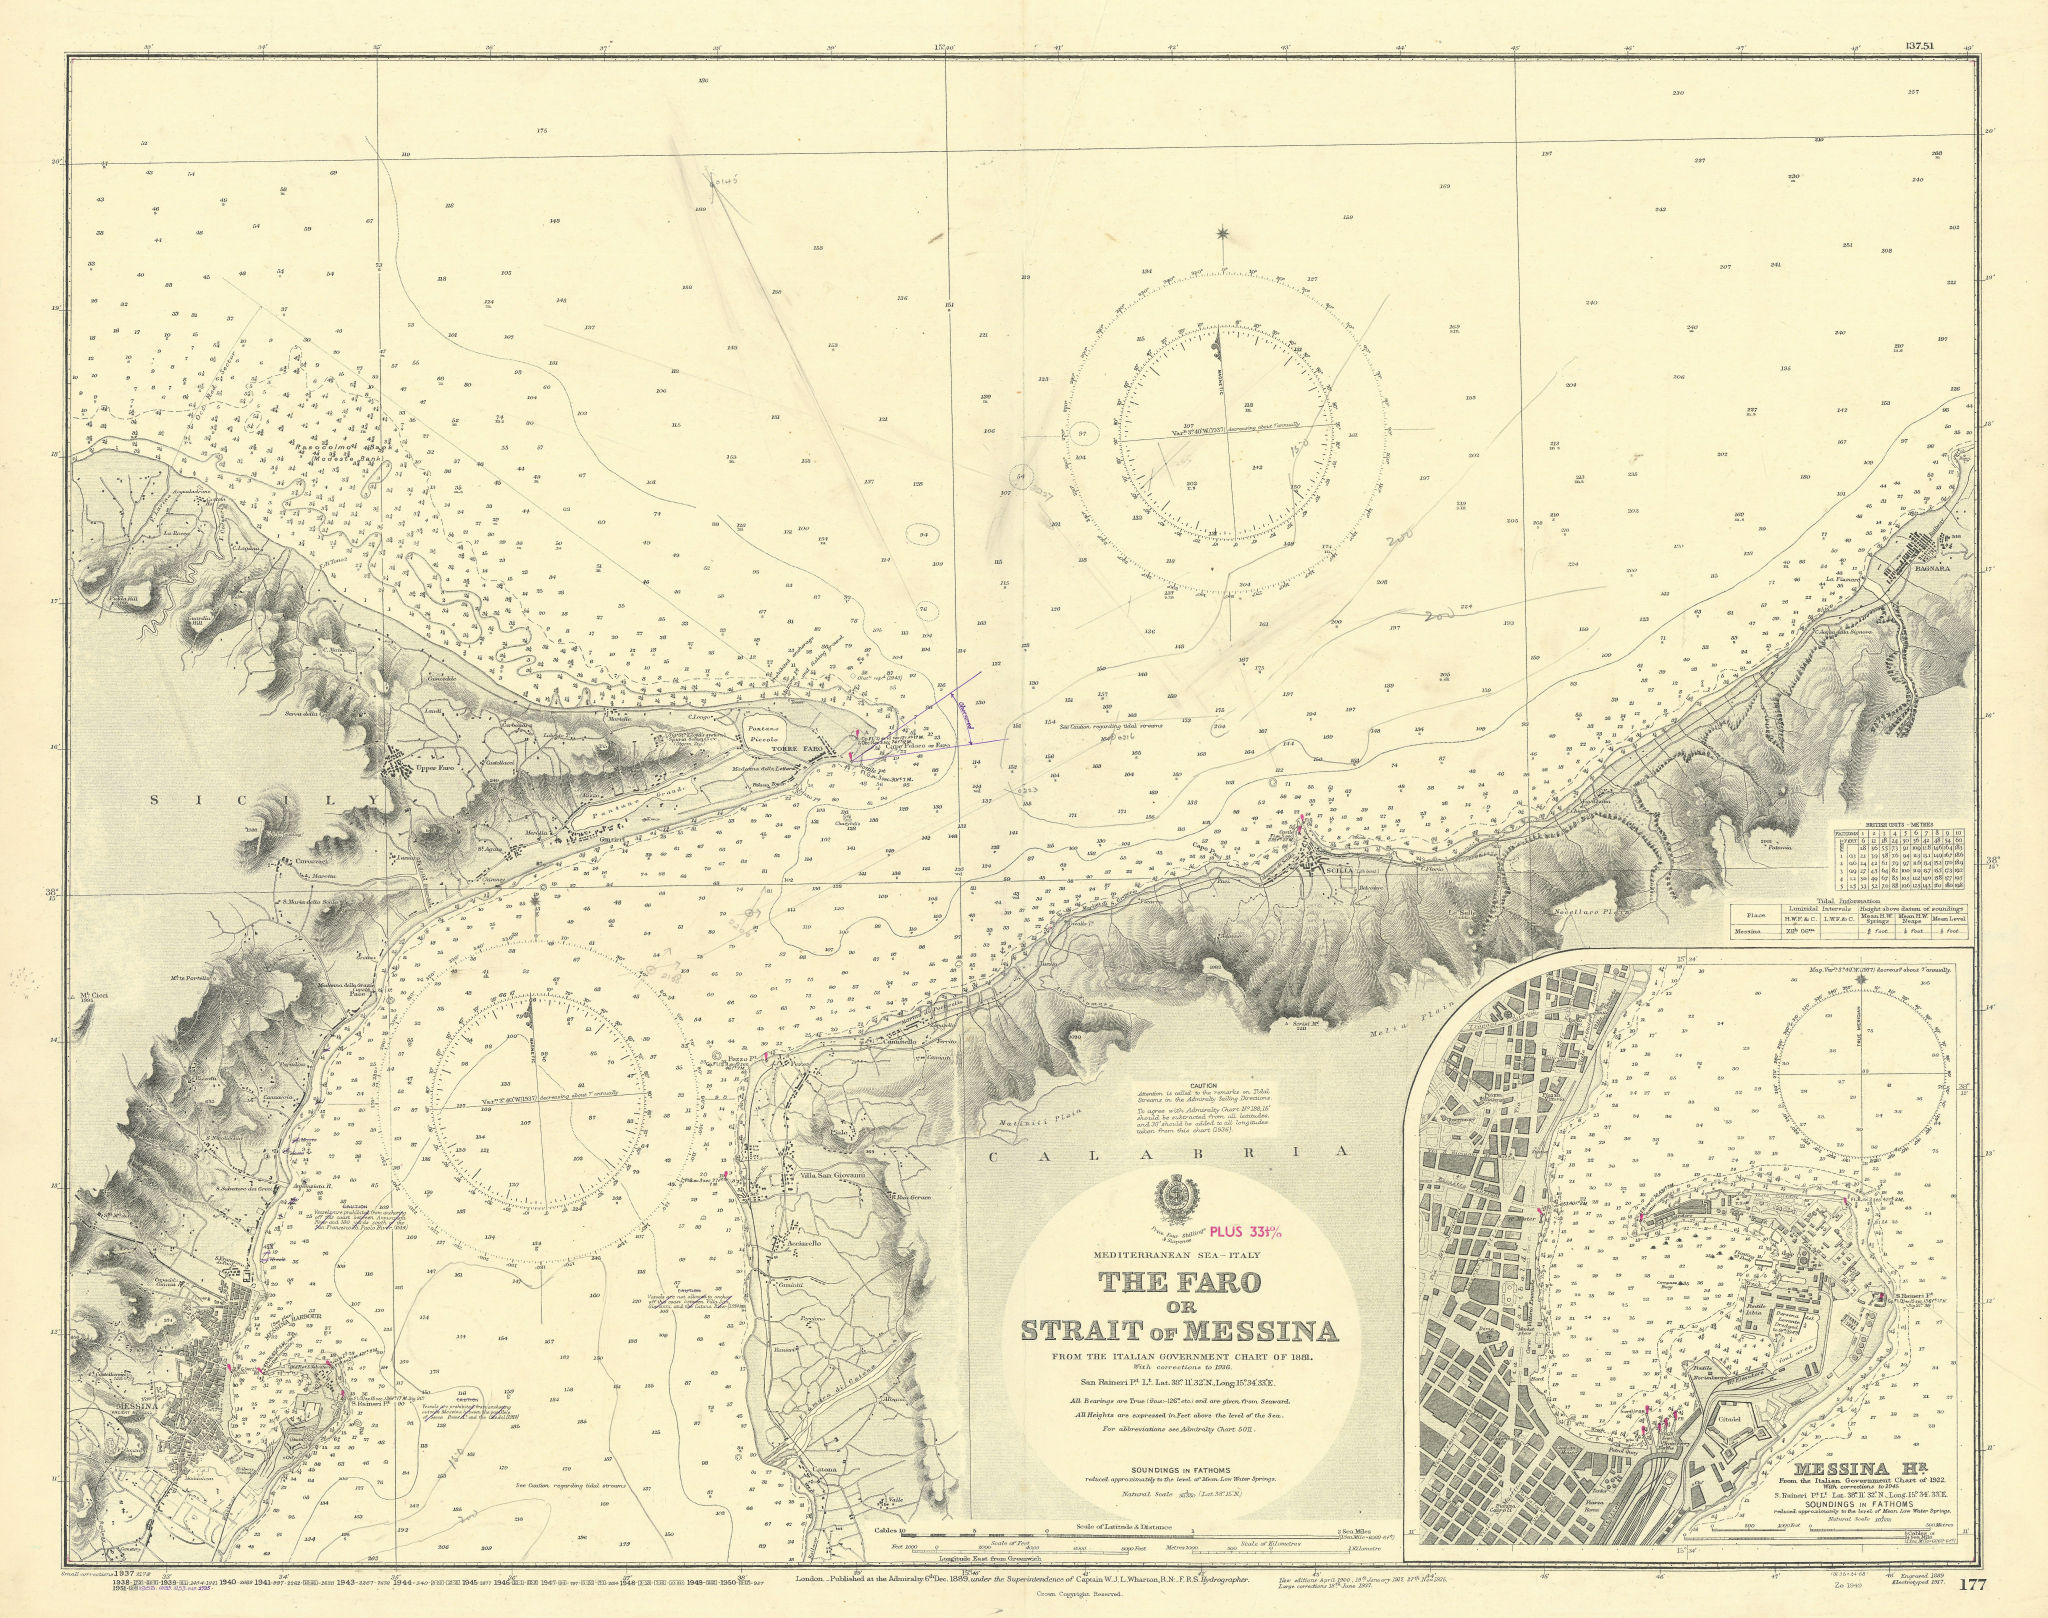 Faro or Strait of Messina. Harbour Sicily. ADMIRALTY sea chart 1889 (1953) map